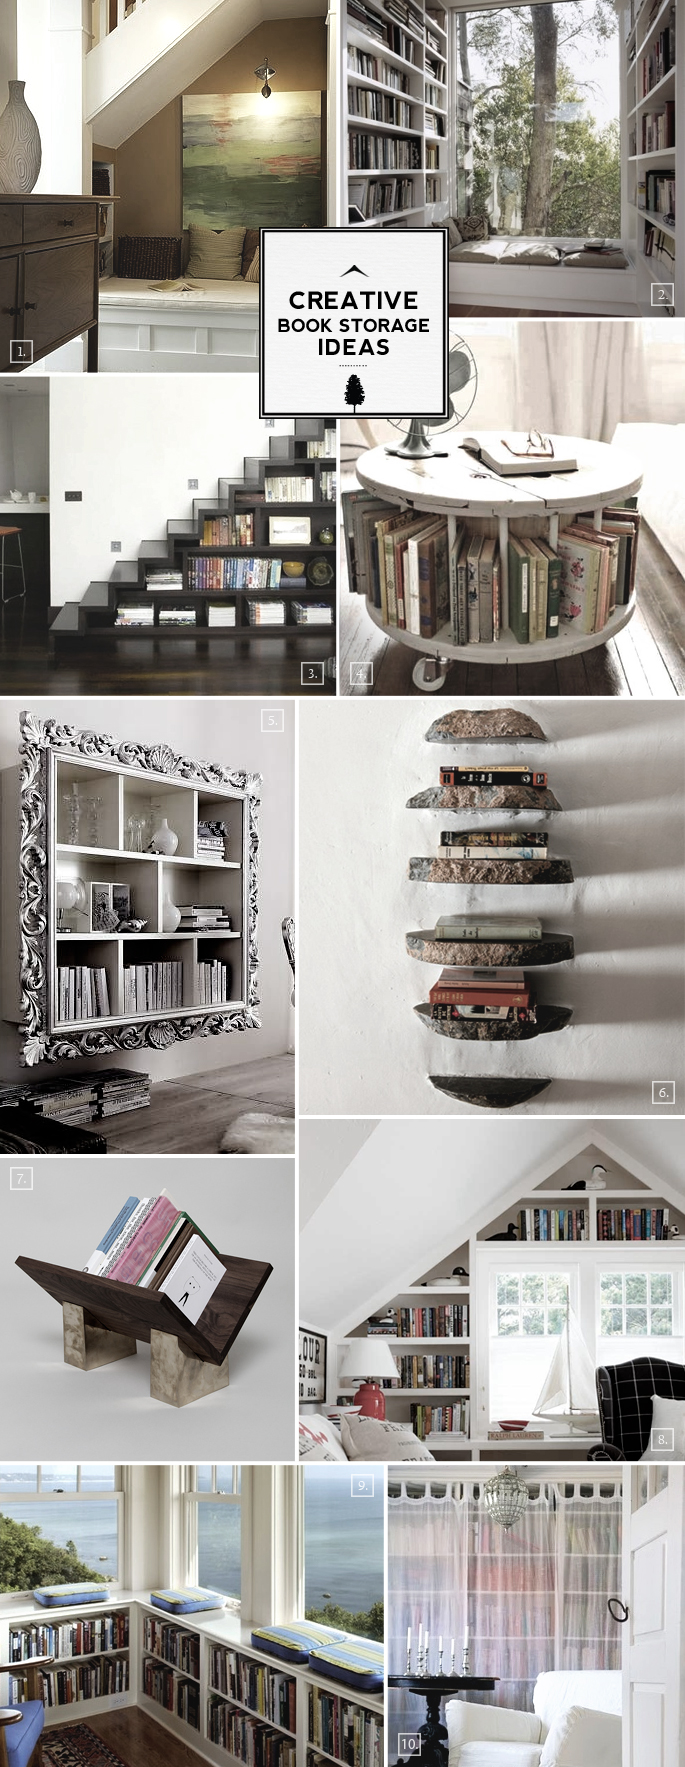 Creative Book Storage Ideas: From Nooks to Staircases